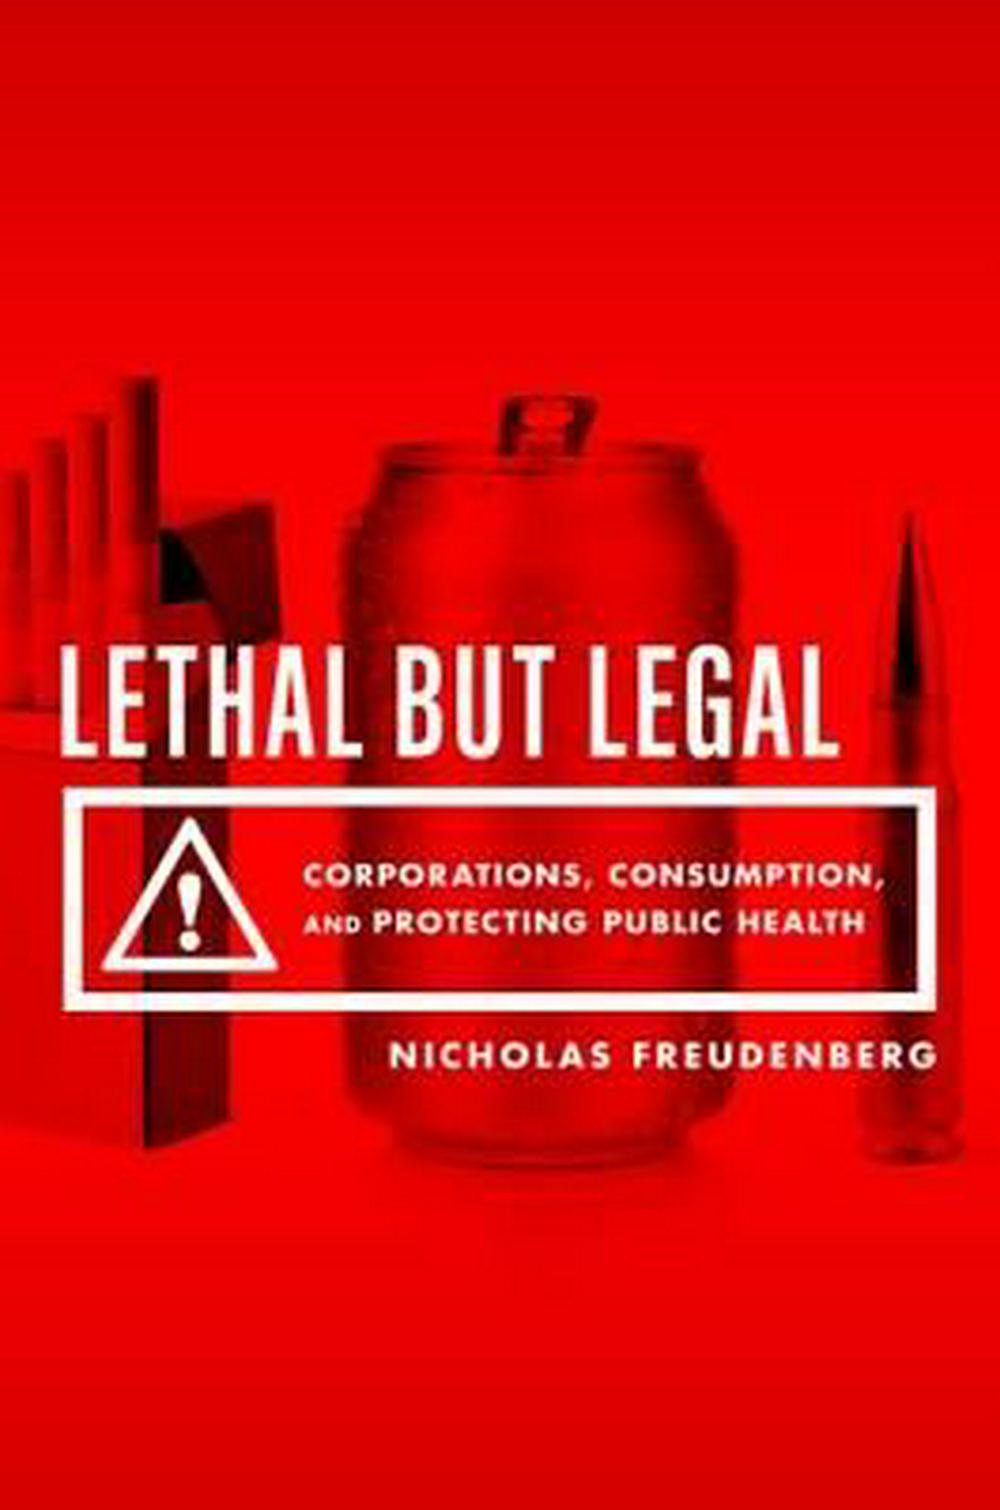 Lethal but LegalCorporations, Consumption, and Protecting Publi... by Nicholas Freudenberg, ISBN: 9780190495374